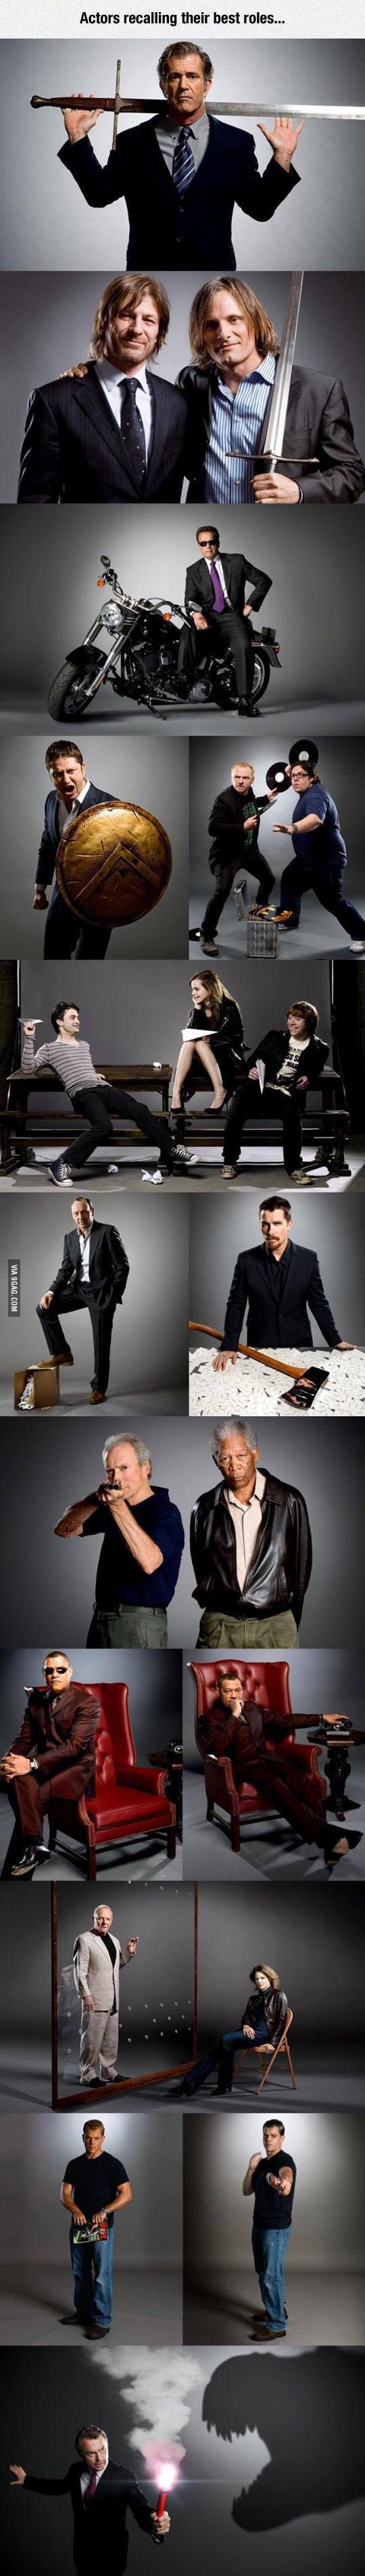 The actors recalling their best roles... anyone recognize their movies?